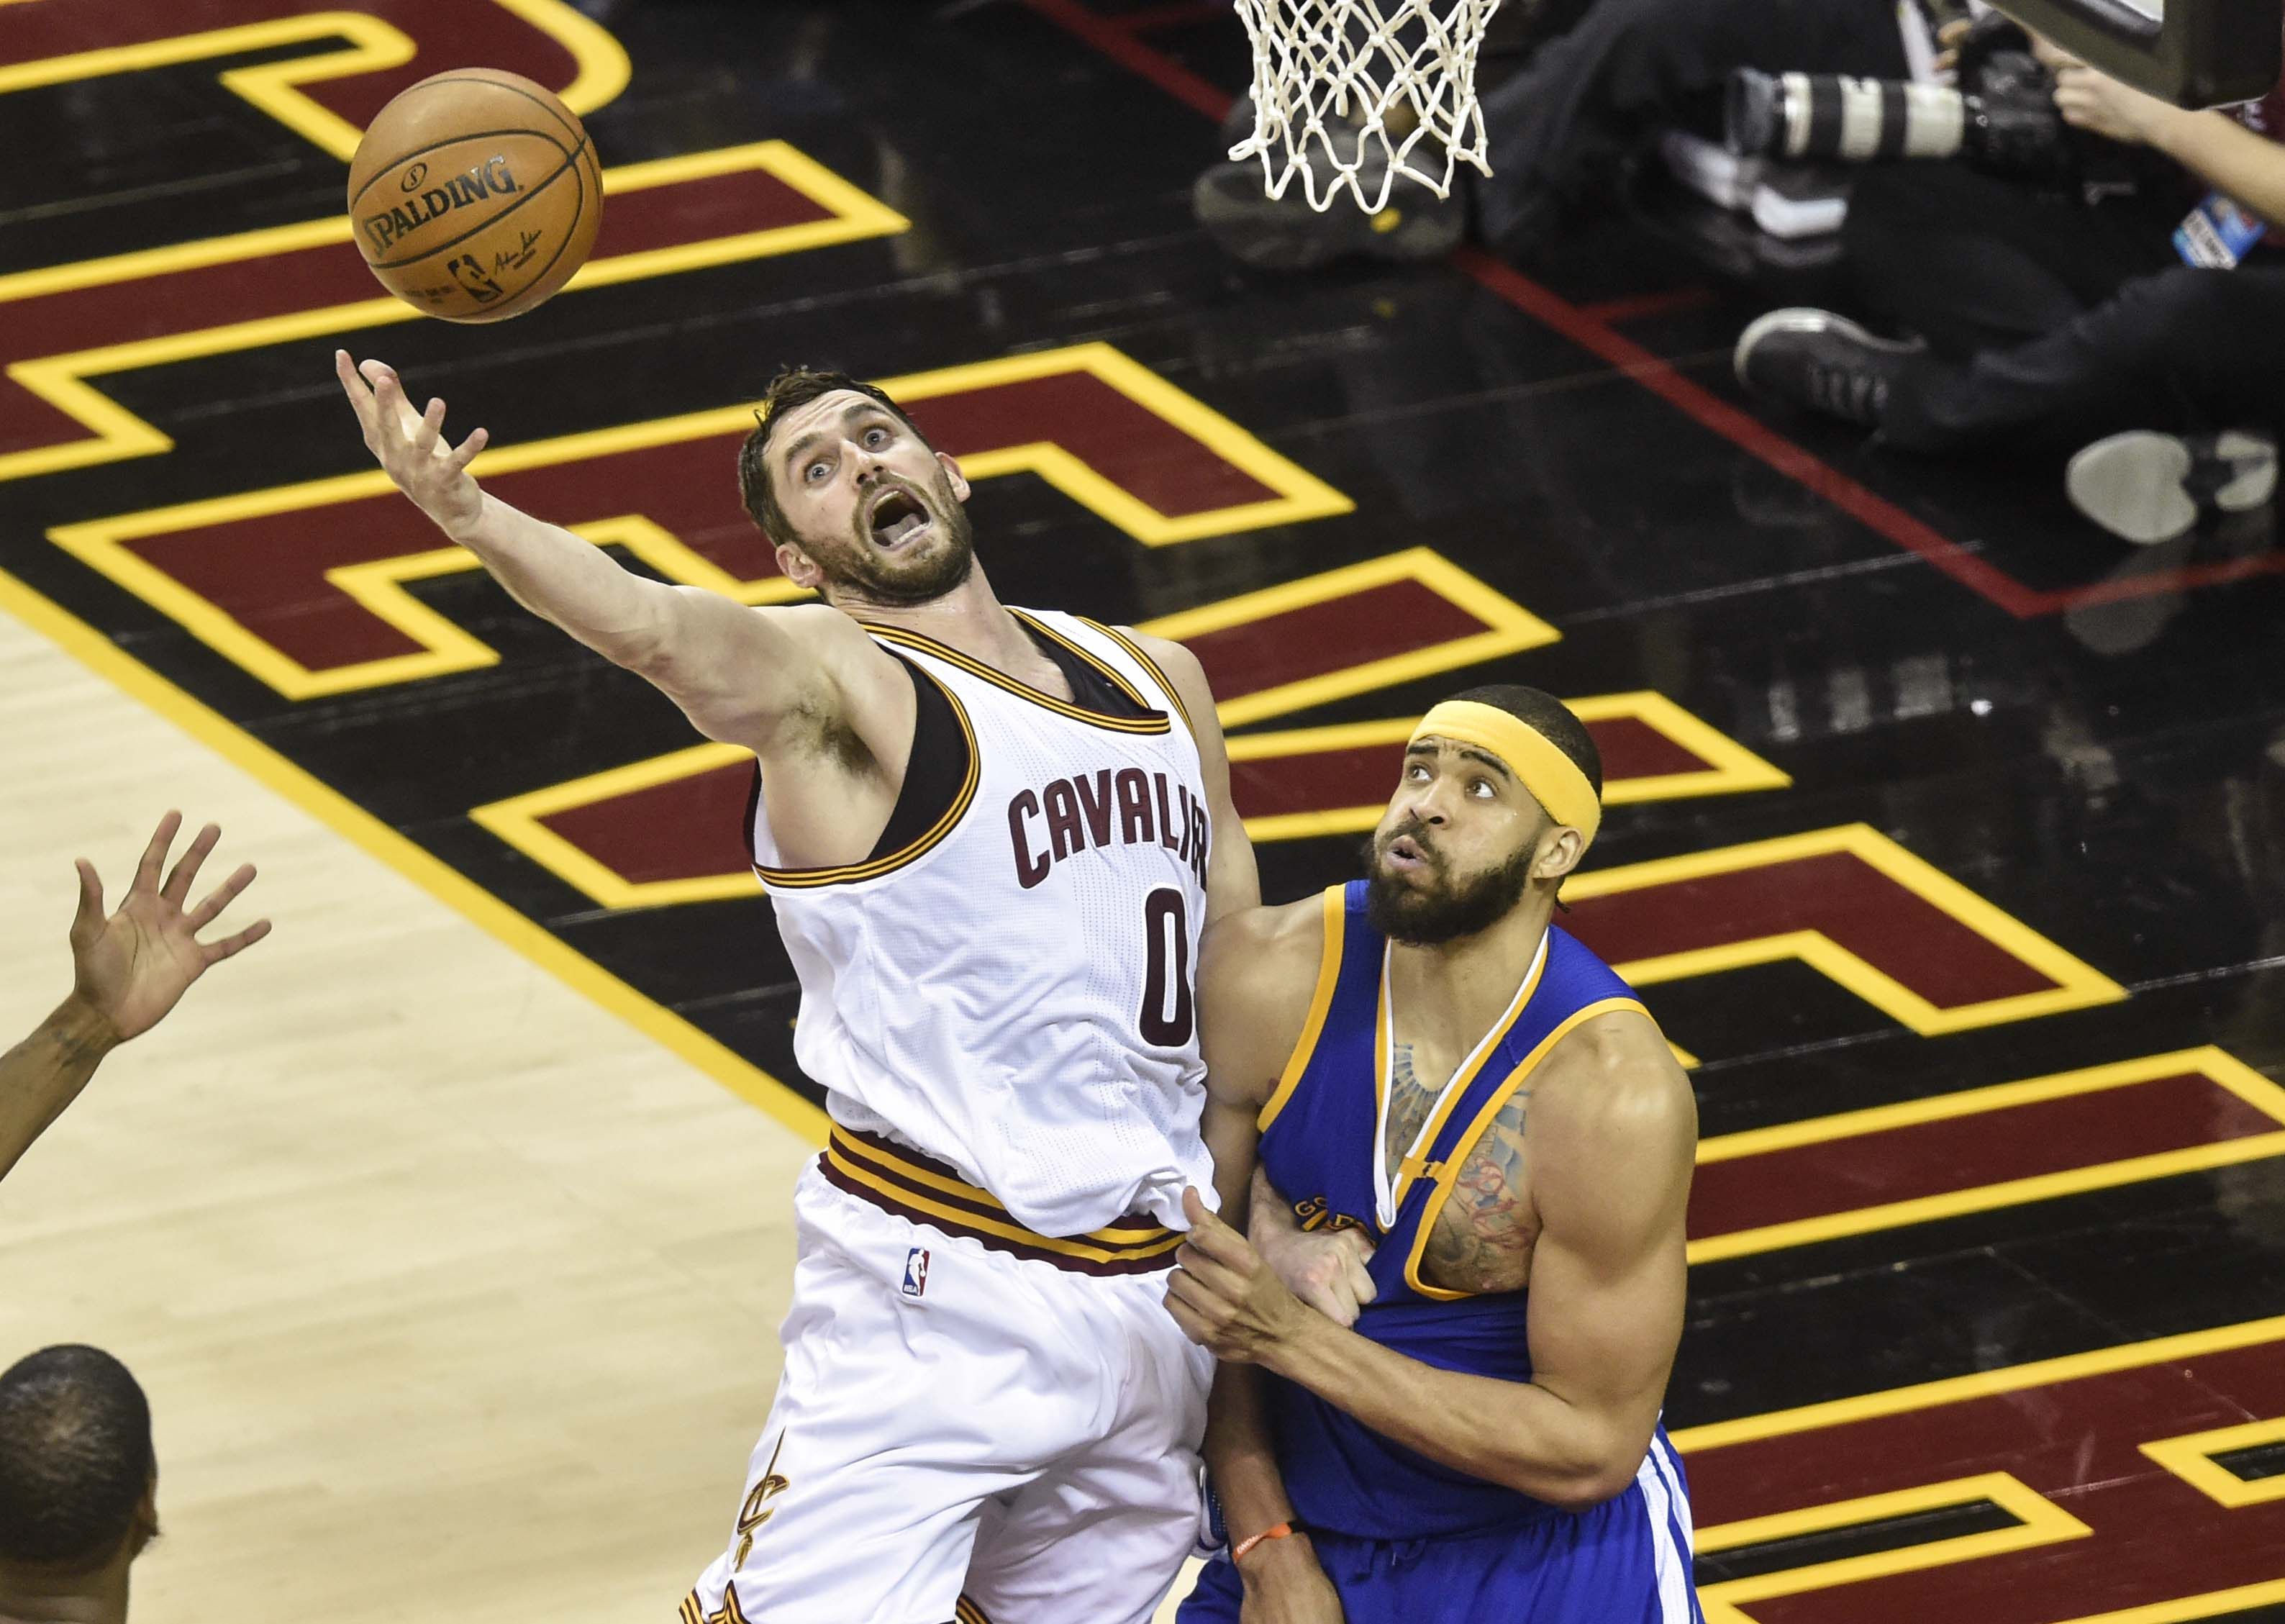 10096456-nba-finals-golden-state-warriors-at-cleveland-cavaliers